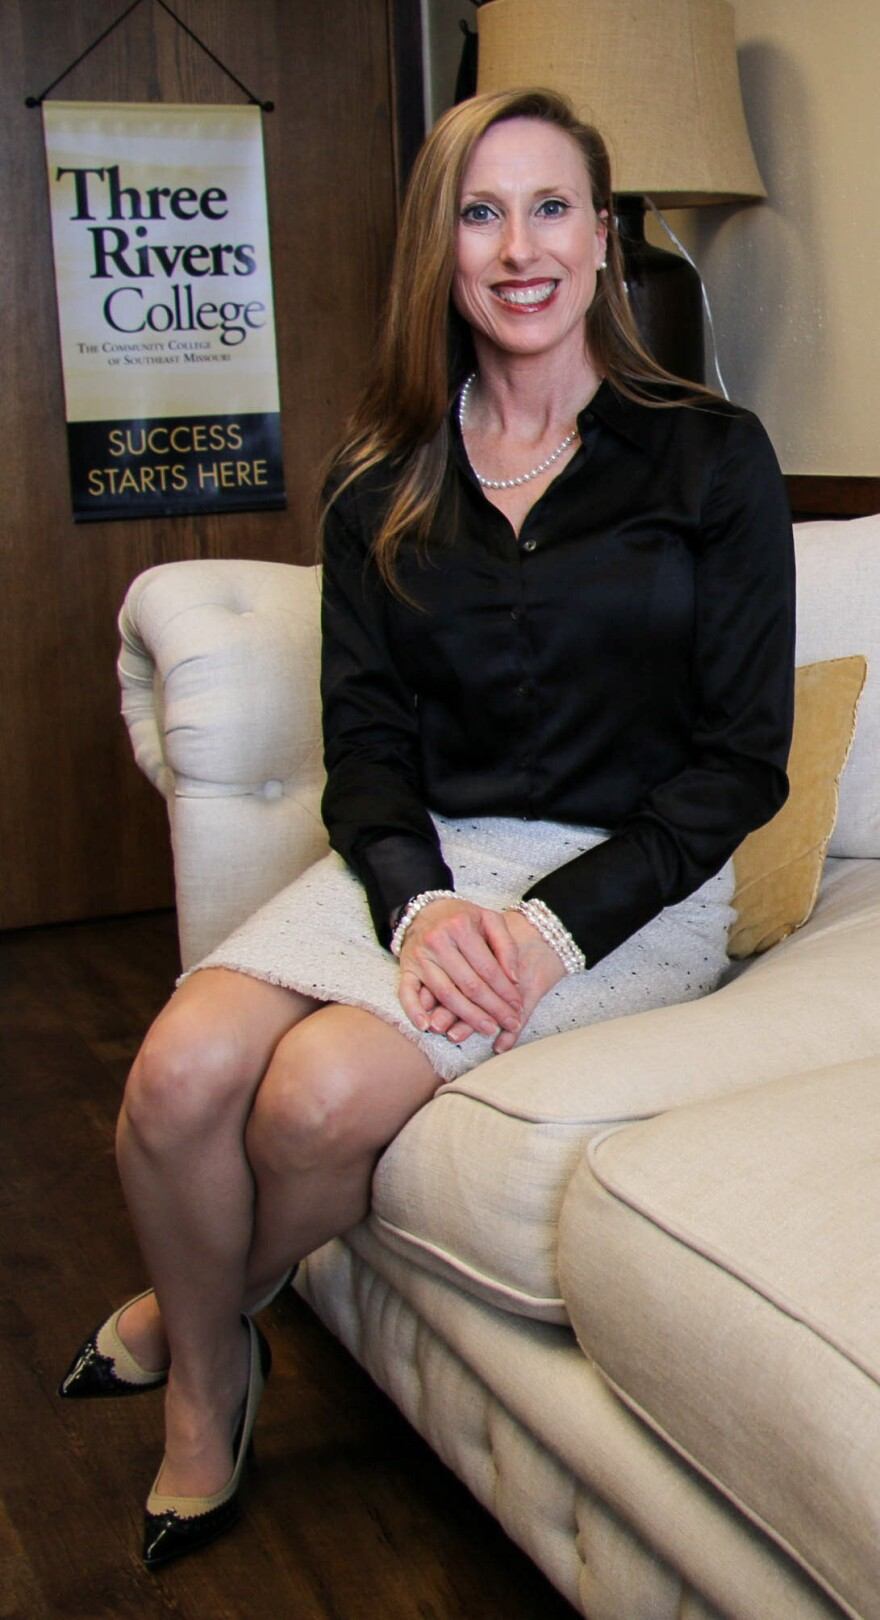 State Rep. Holly Rehder has championed establishing a prescription drug database since joining the legislature in 2013. Several members of her family have had addiction issues.